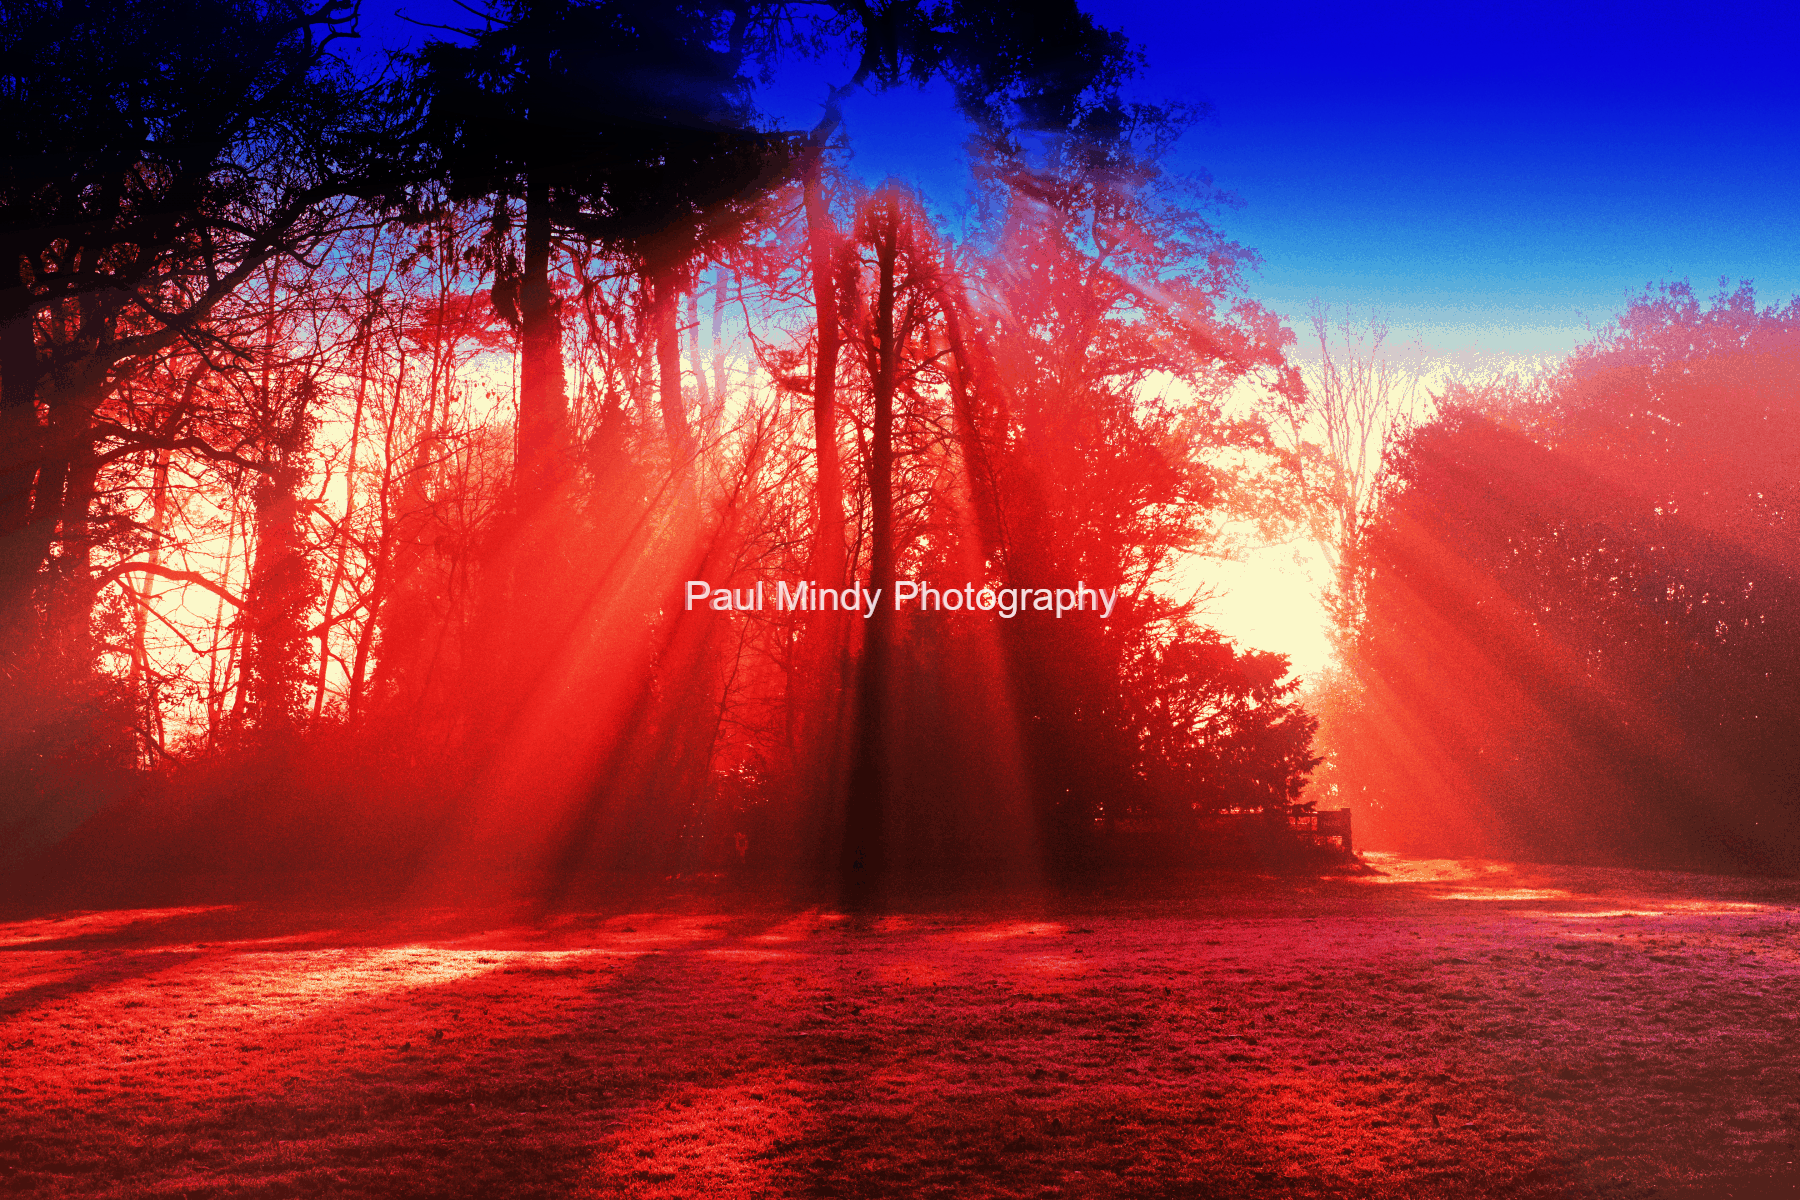 Sandringham-The-Foggy-Red-Trees-Paul-Mindy-Photography